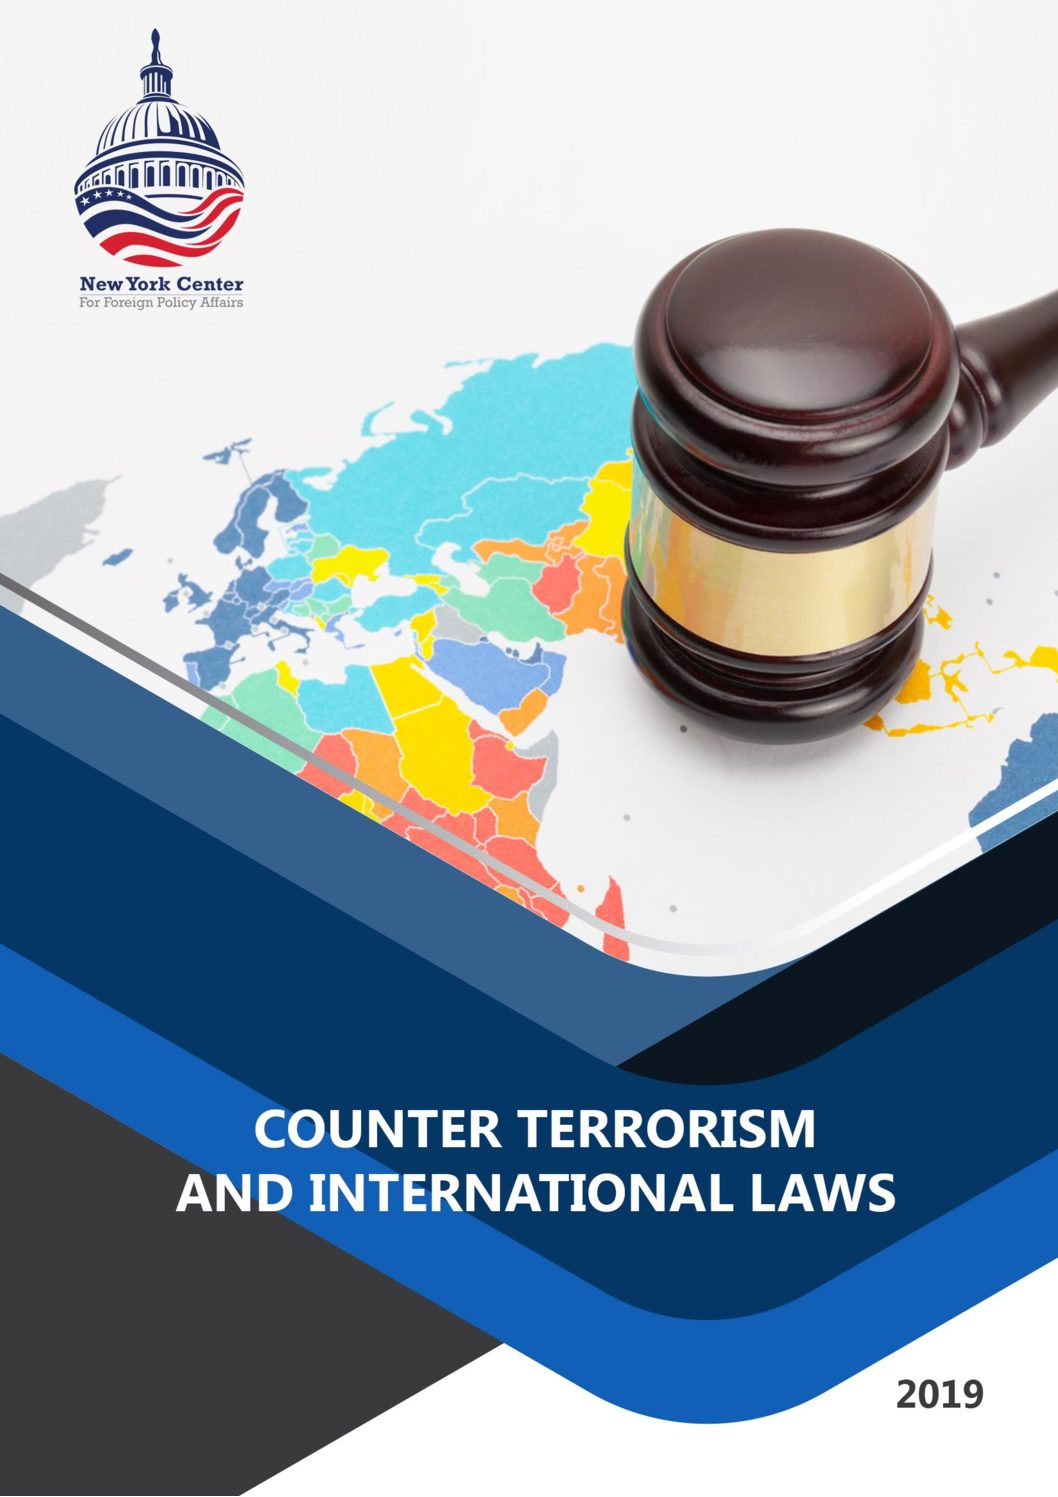 Counter Terrorism and International Laws